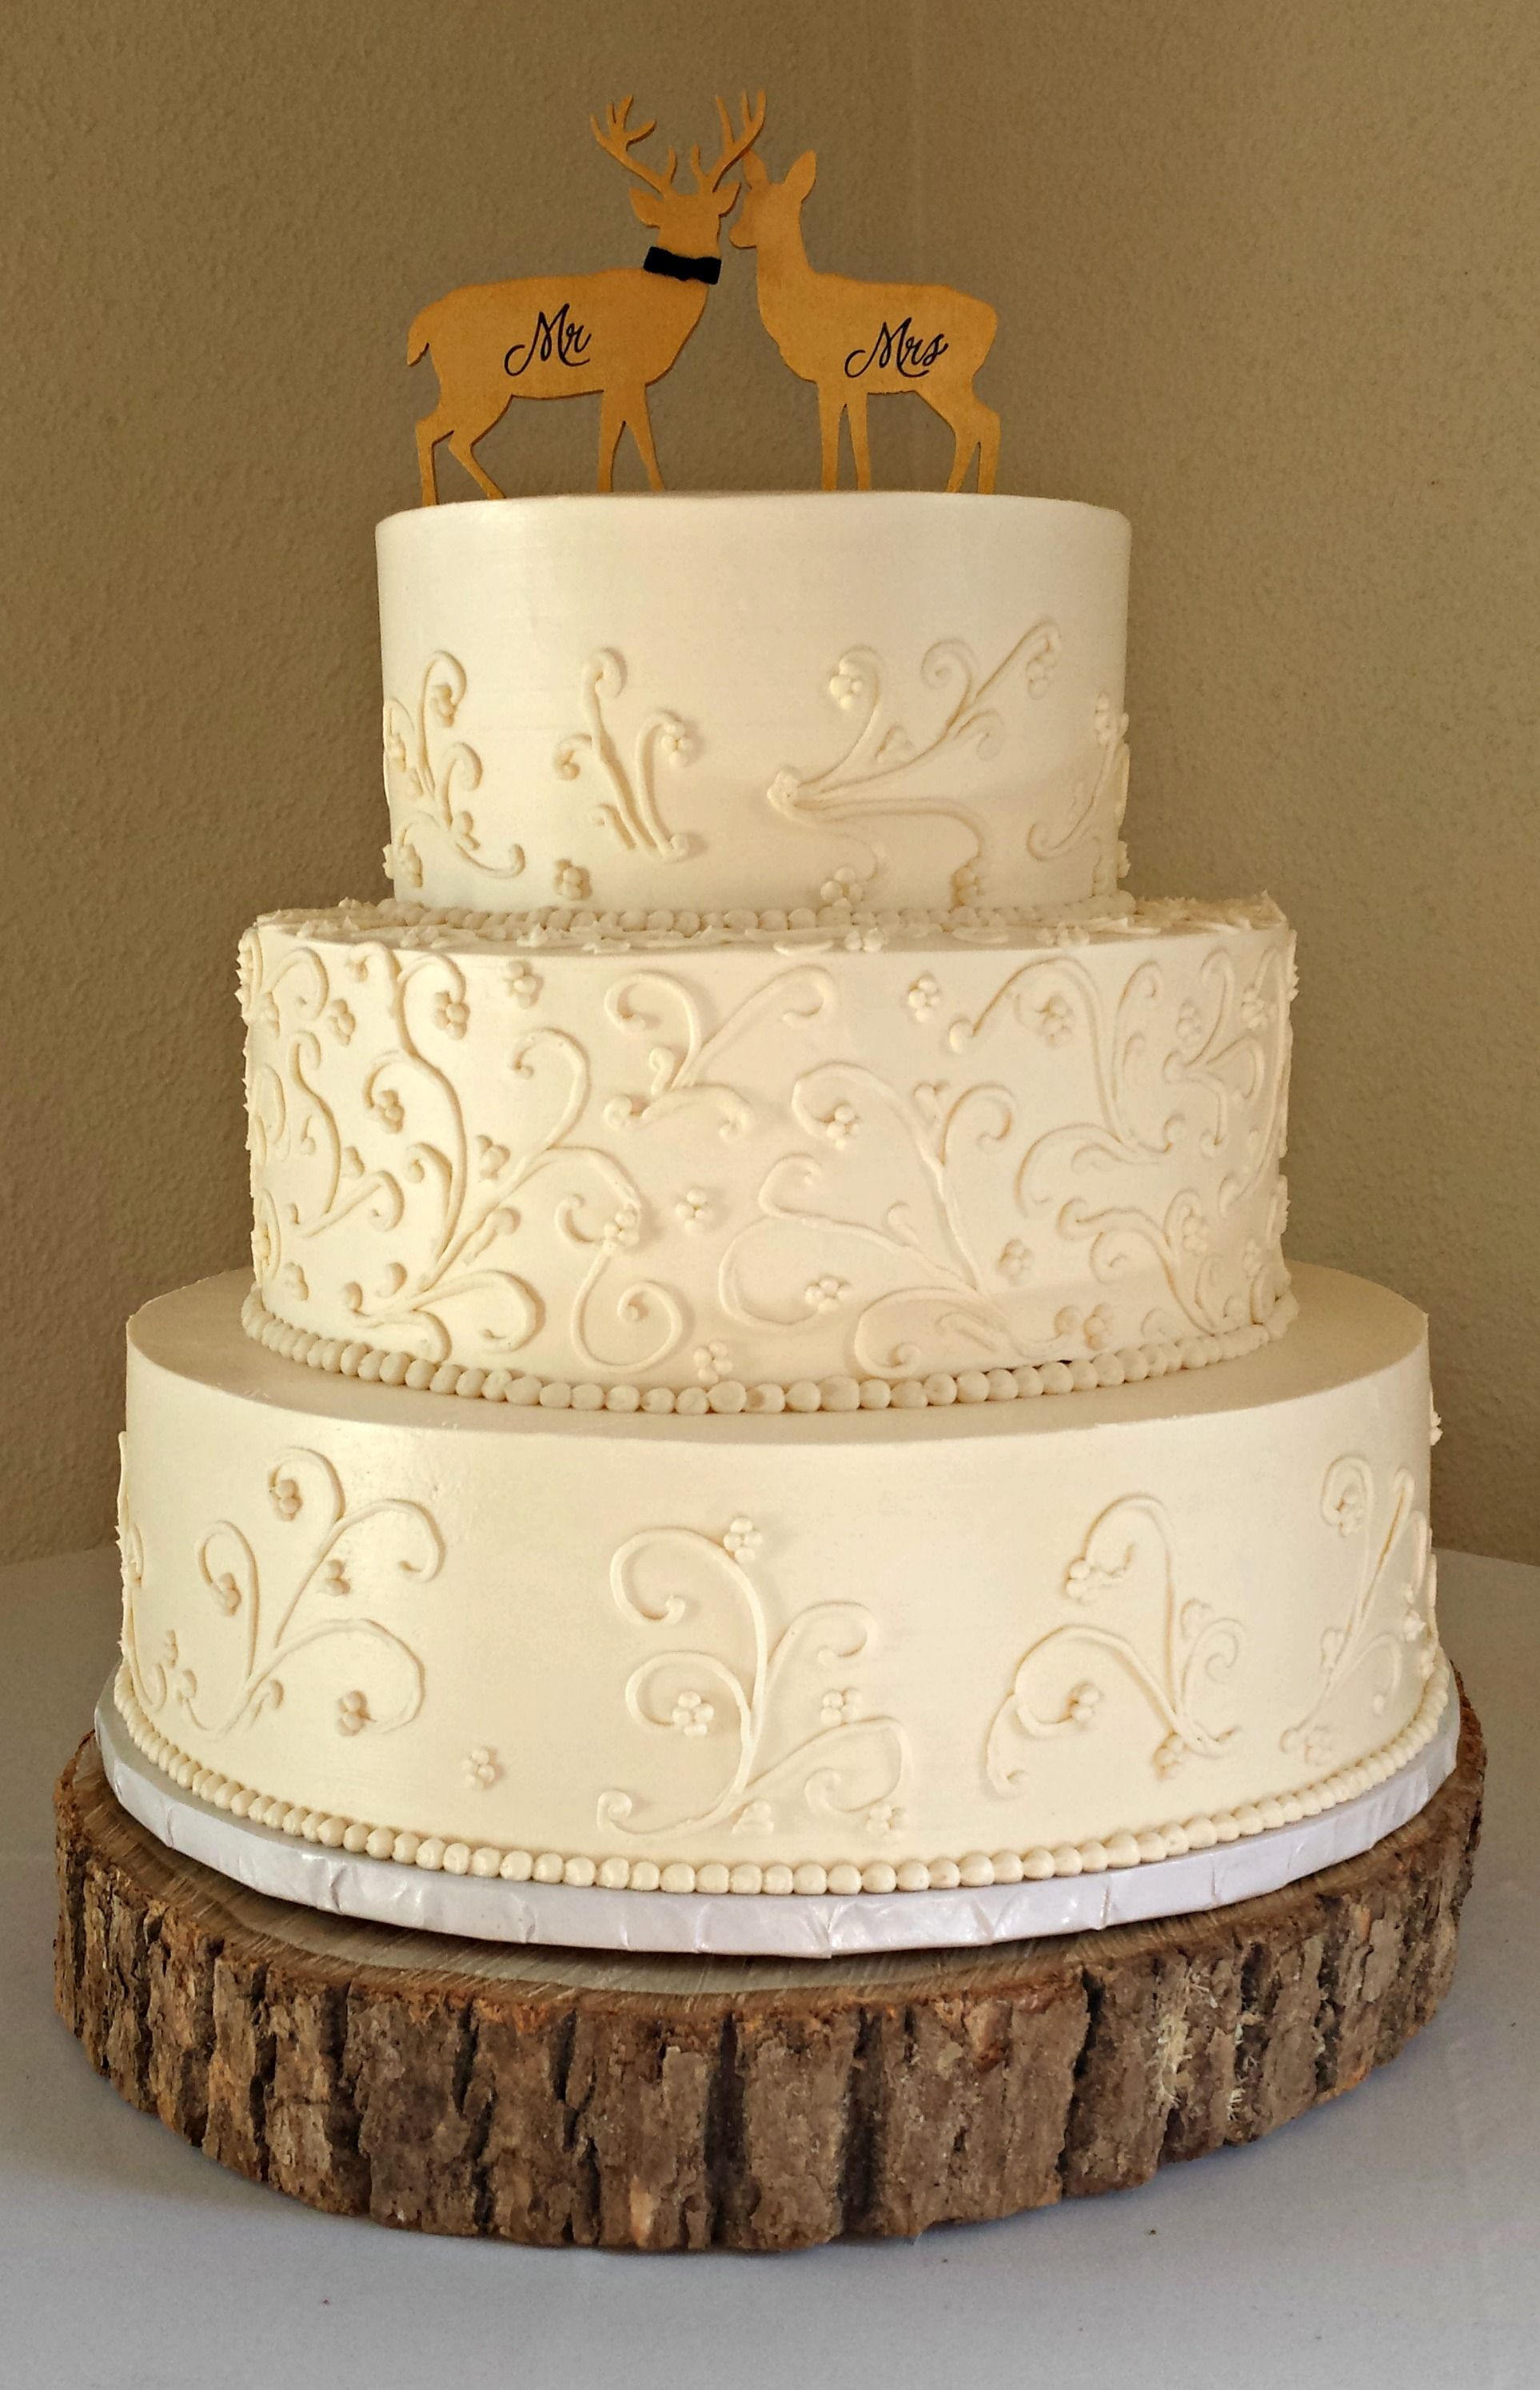 Gluten Free White Buttercream Wedding Cake with Scrollwork and Deer ...